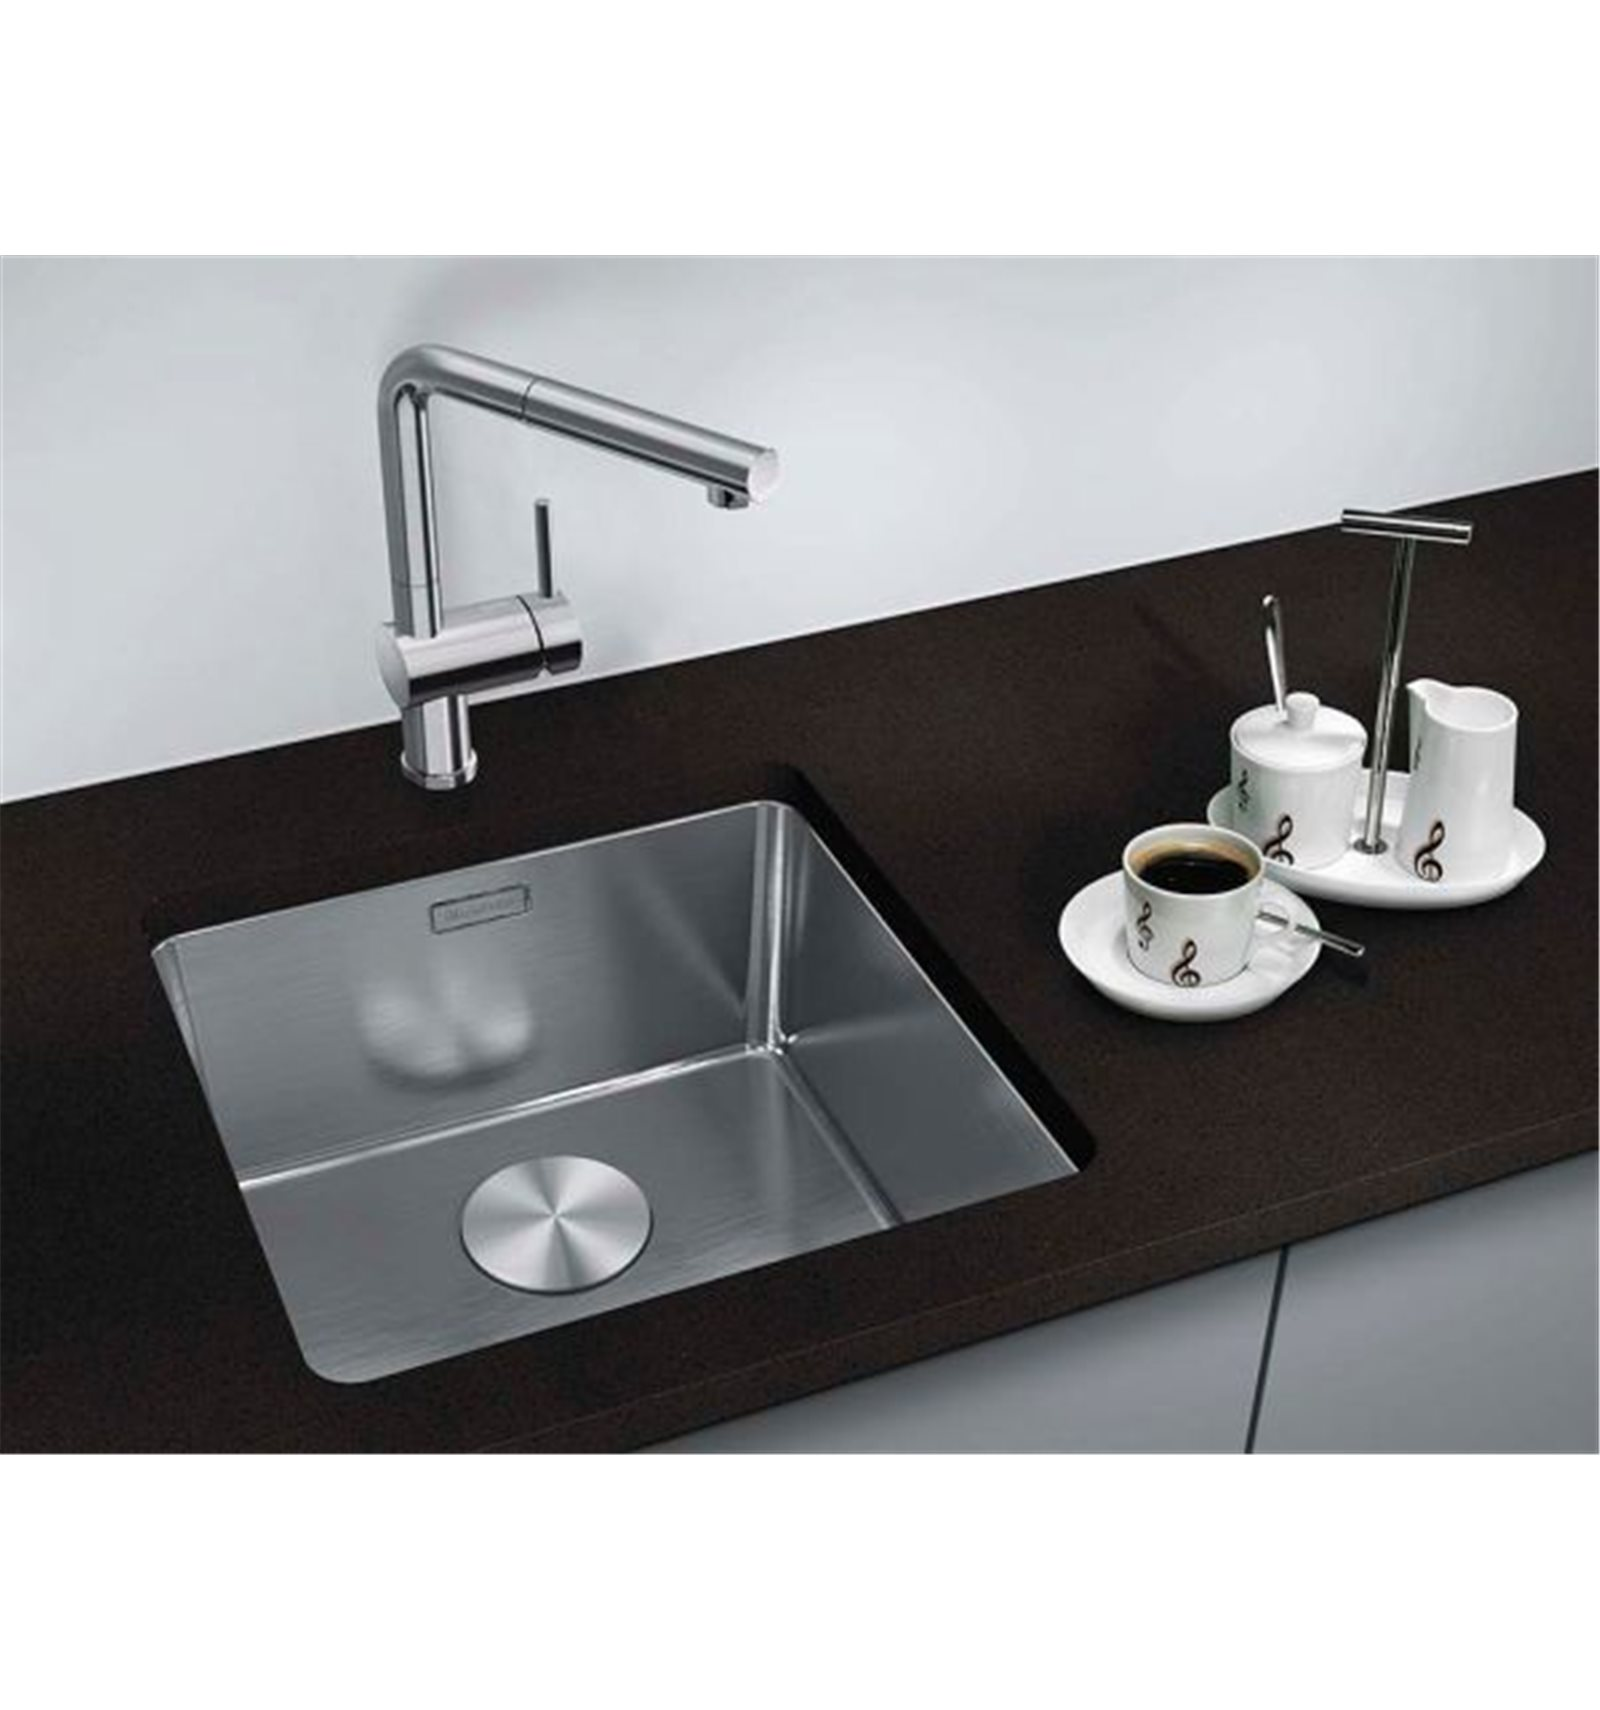 Blanco Andano 400 U St Steel Kitchen Sink